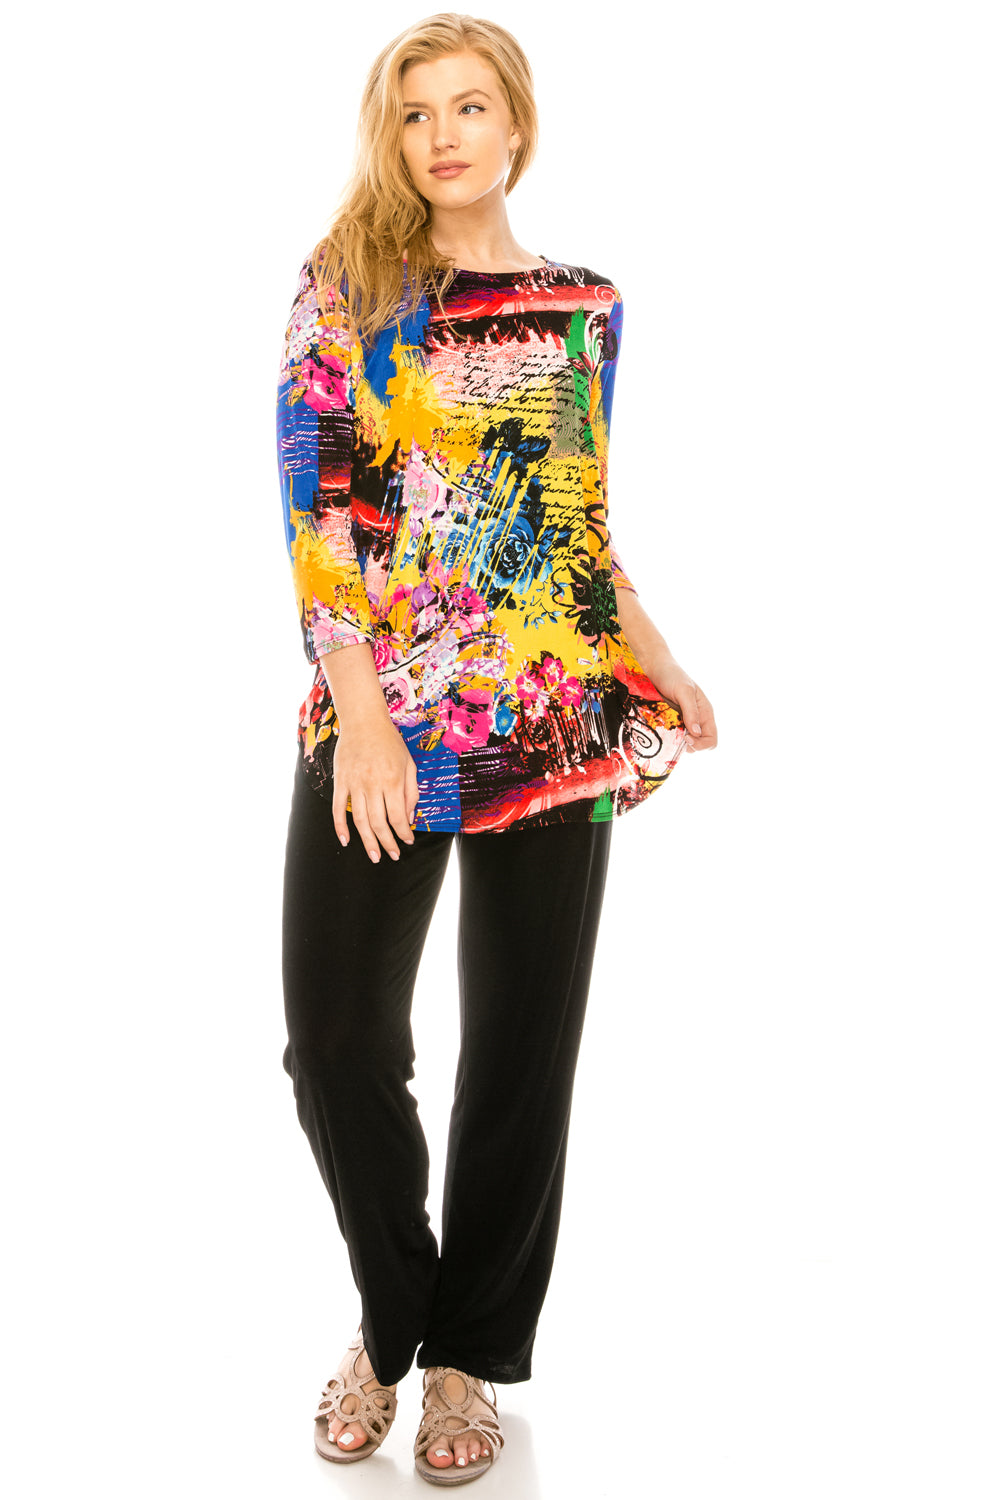 Jostar Women's Stretchy Rounded Bottom Tunic TopQuarter Sleeve Print Plus, 346BN-QXP-W169 - Jostar Online